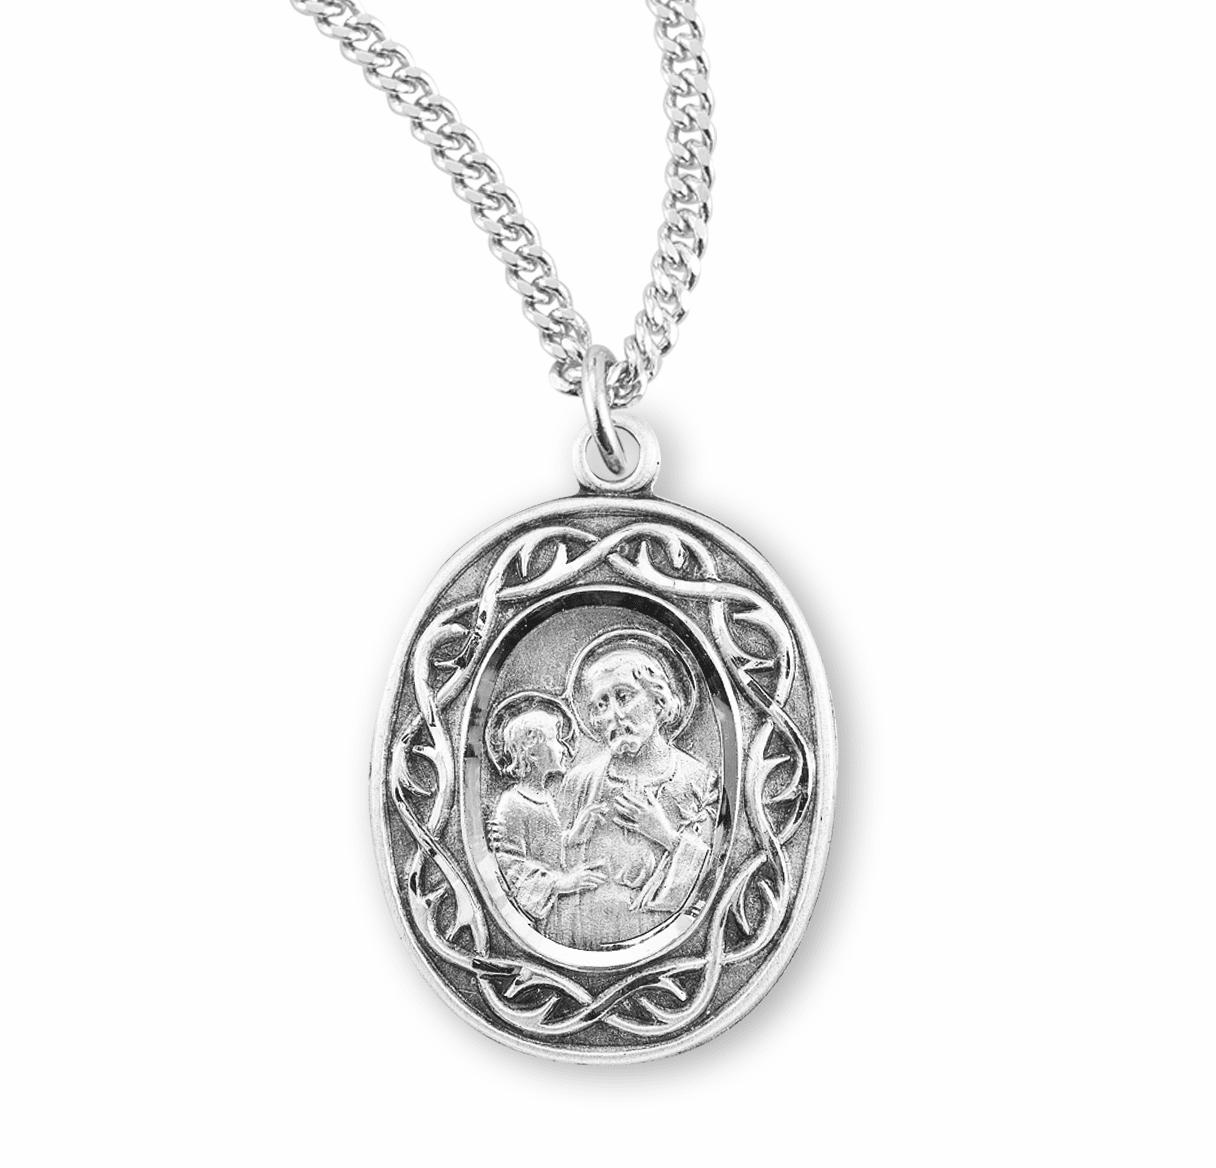 St Joseph Crown of Thorns Sterling Silver Medal Necklace by HMH Religious